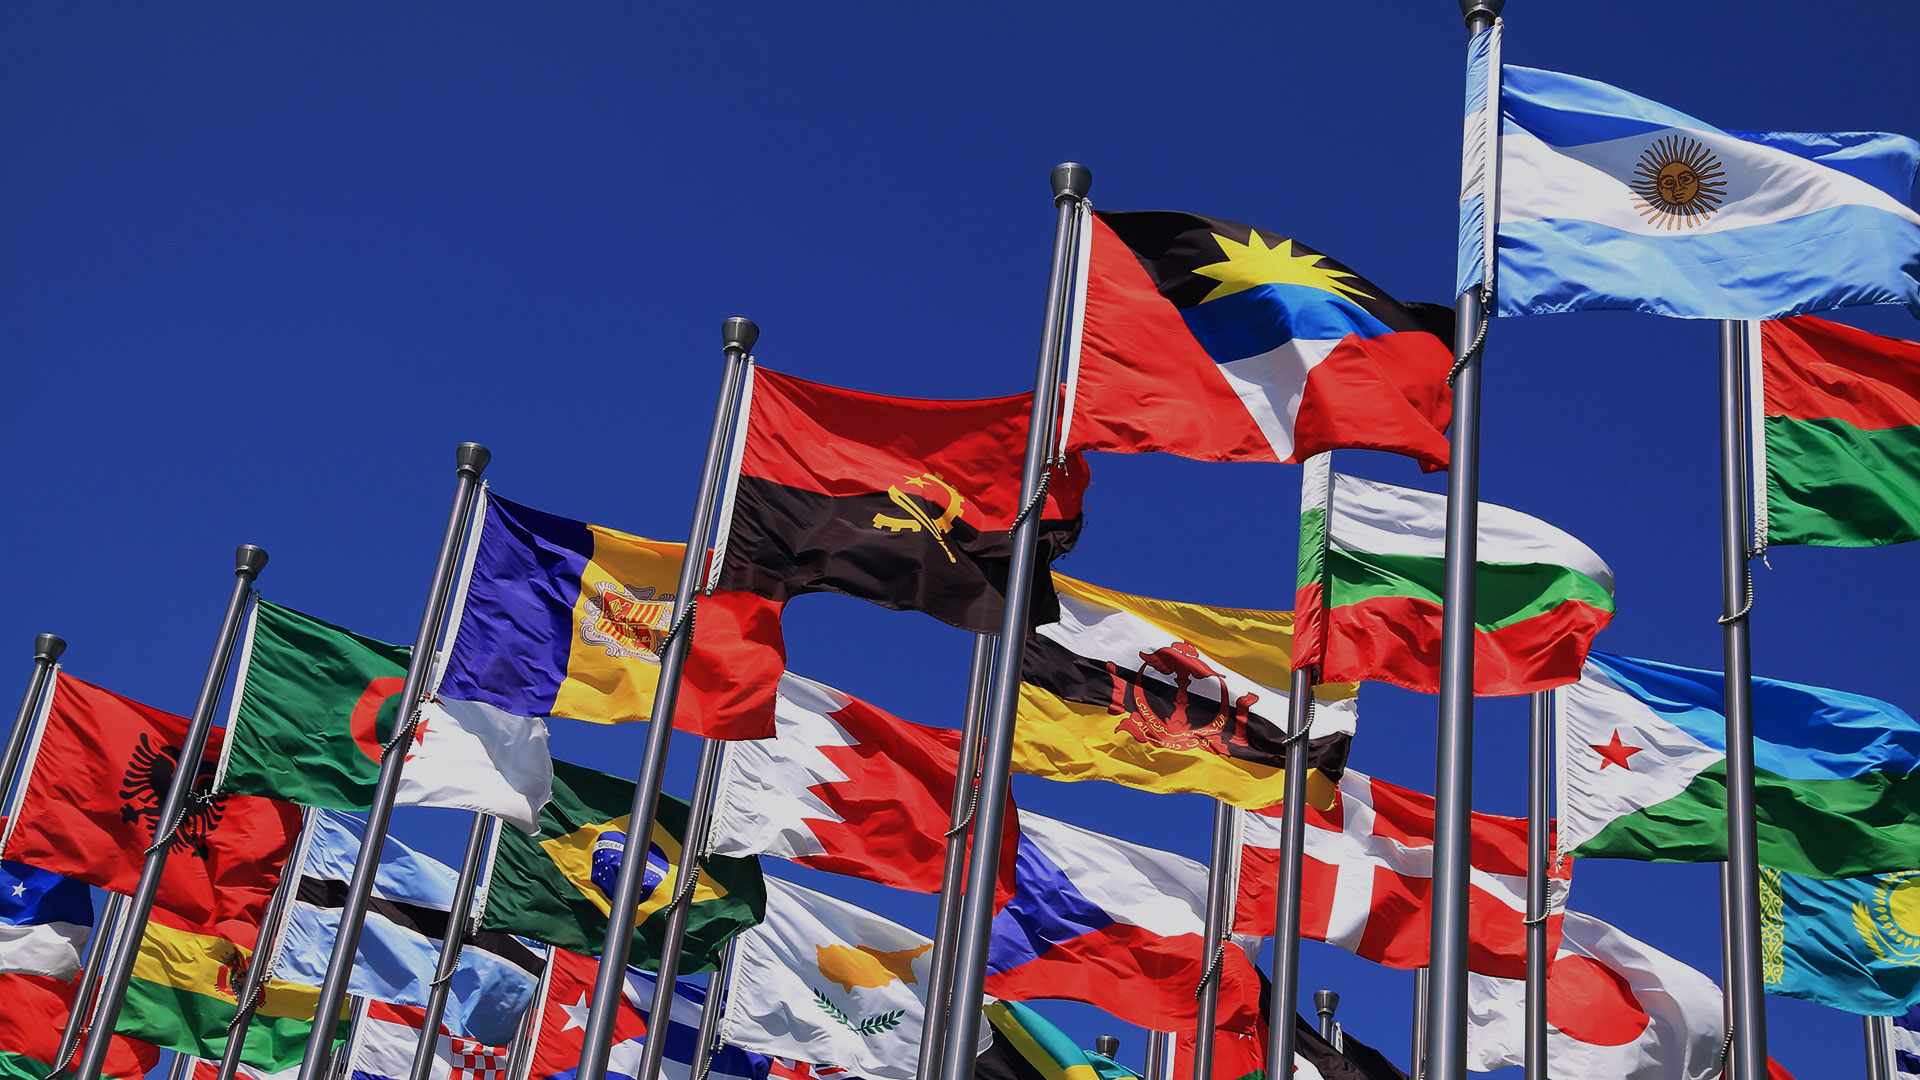 International flags of multiple nations outdoors in the blue sky